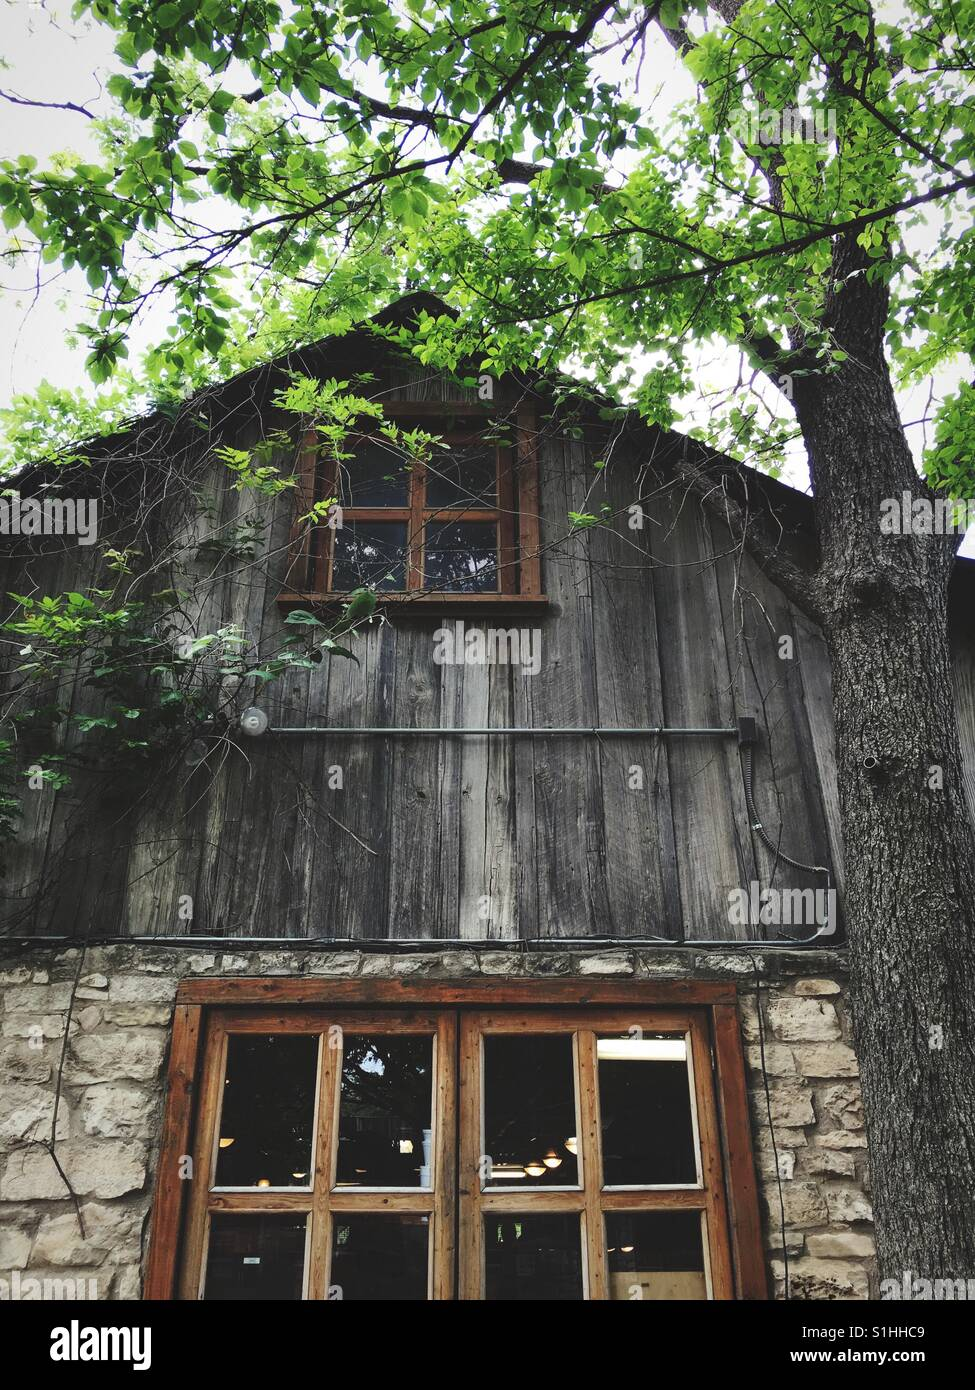 Old rural house made of stone and wood - Stock Image